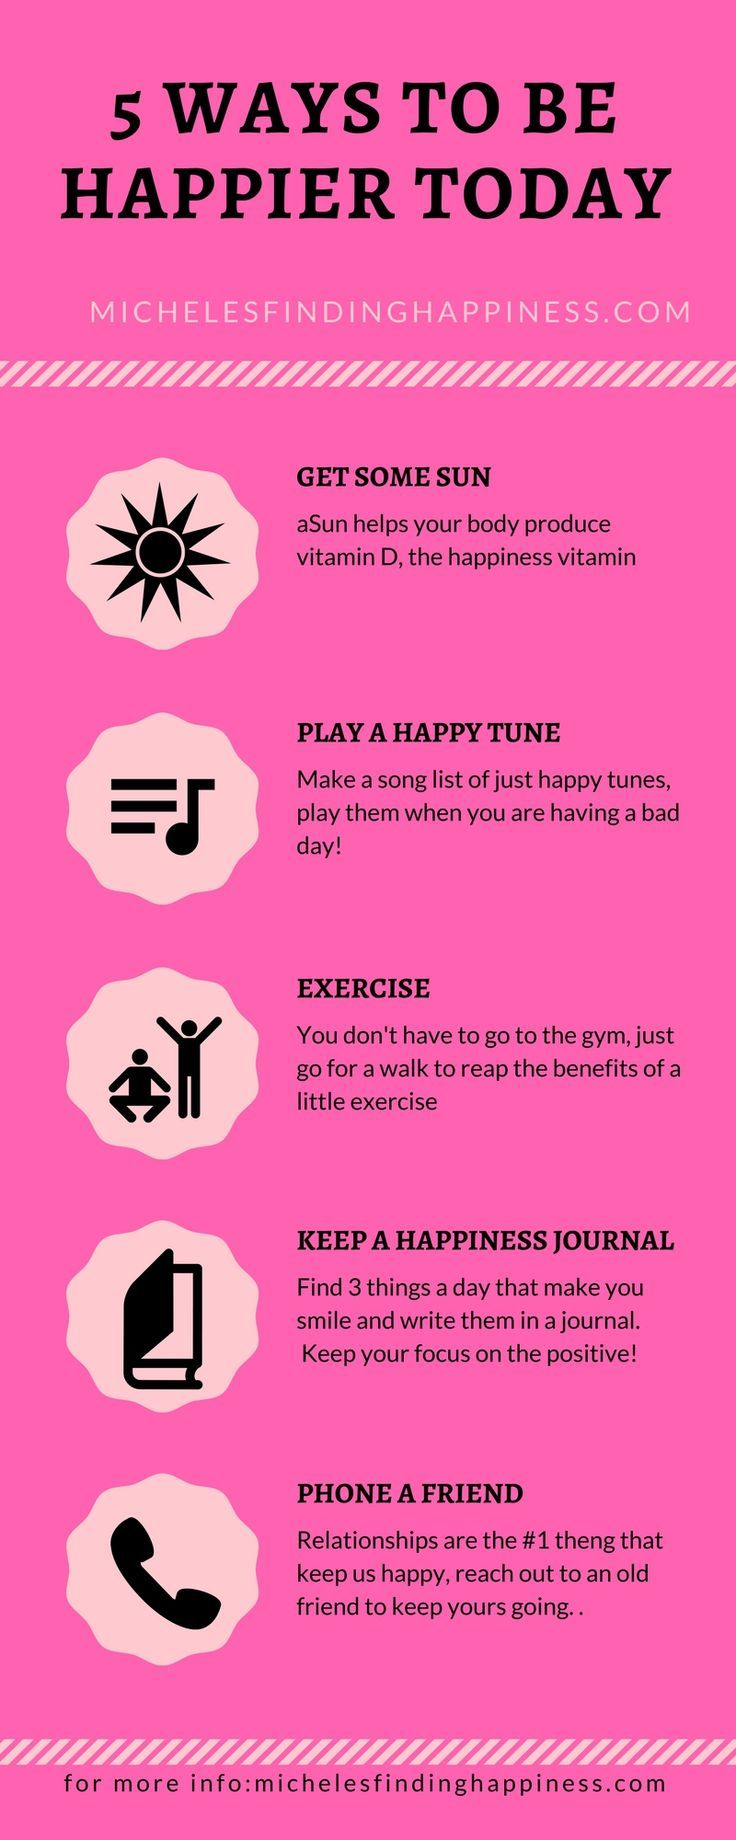 Happiness is sometimes a fleeting thing.  Try these 5 happiness tips to boost your mood today.